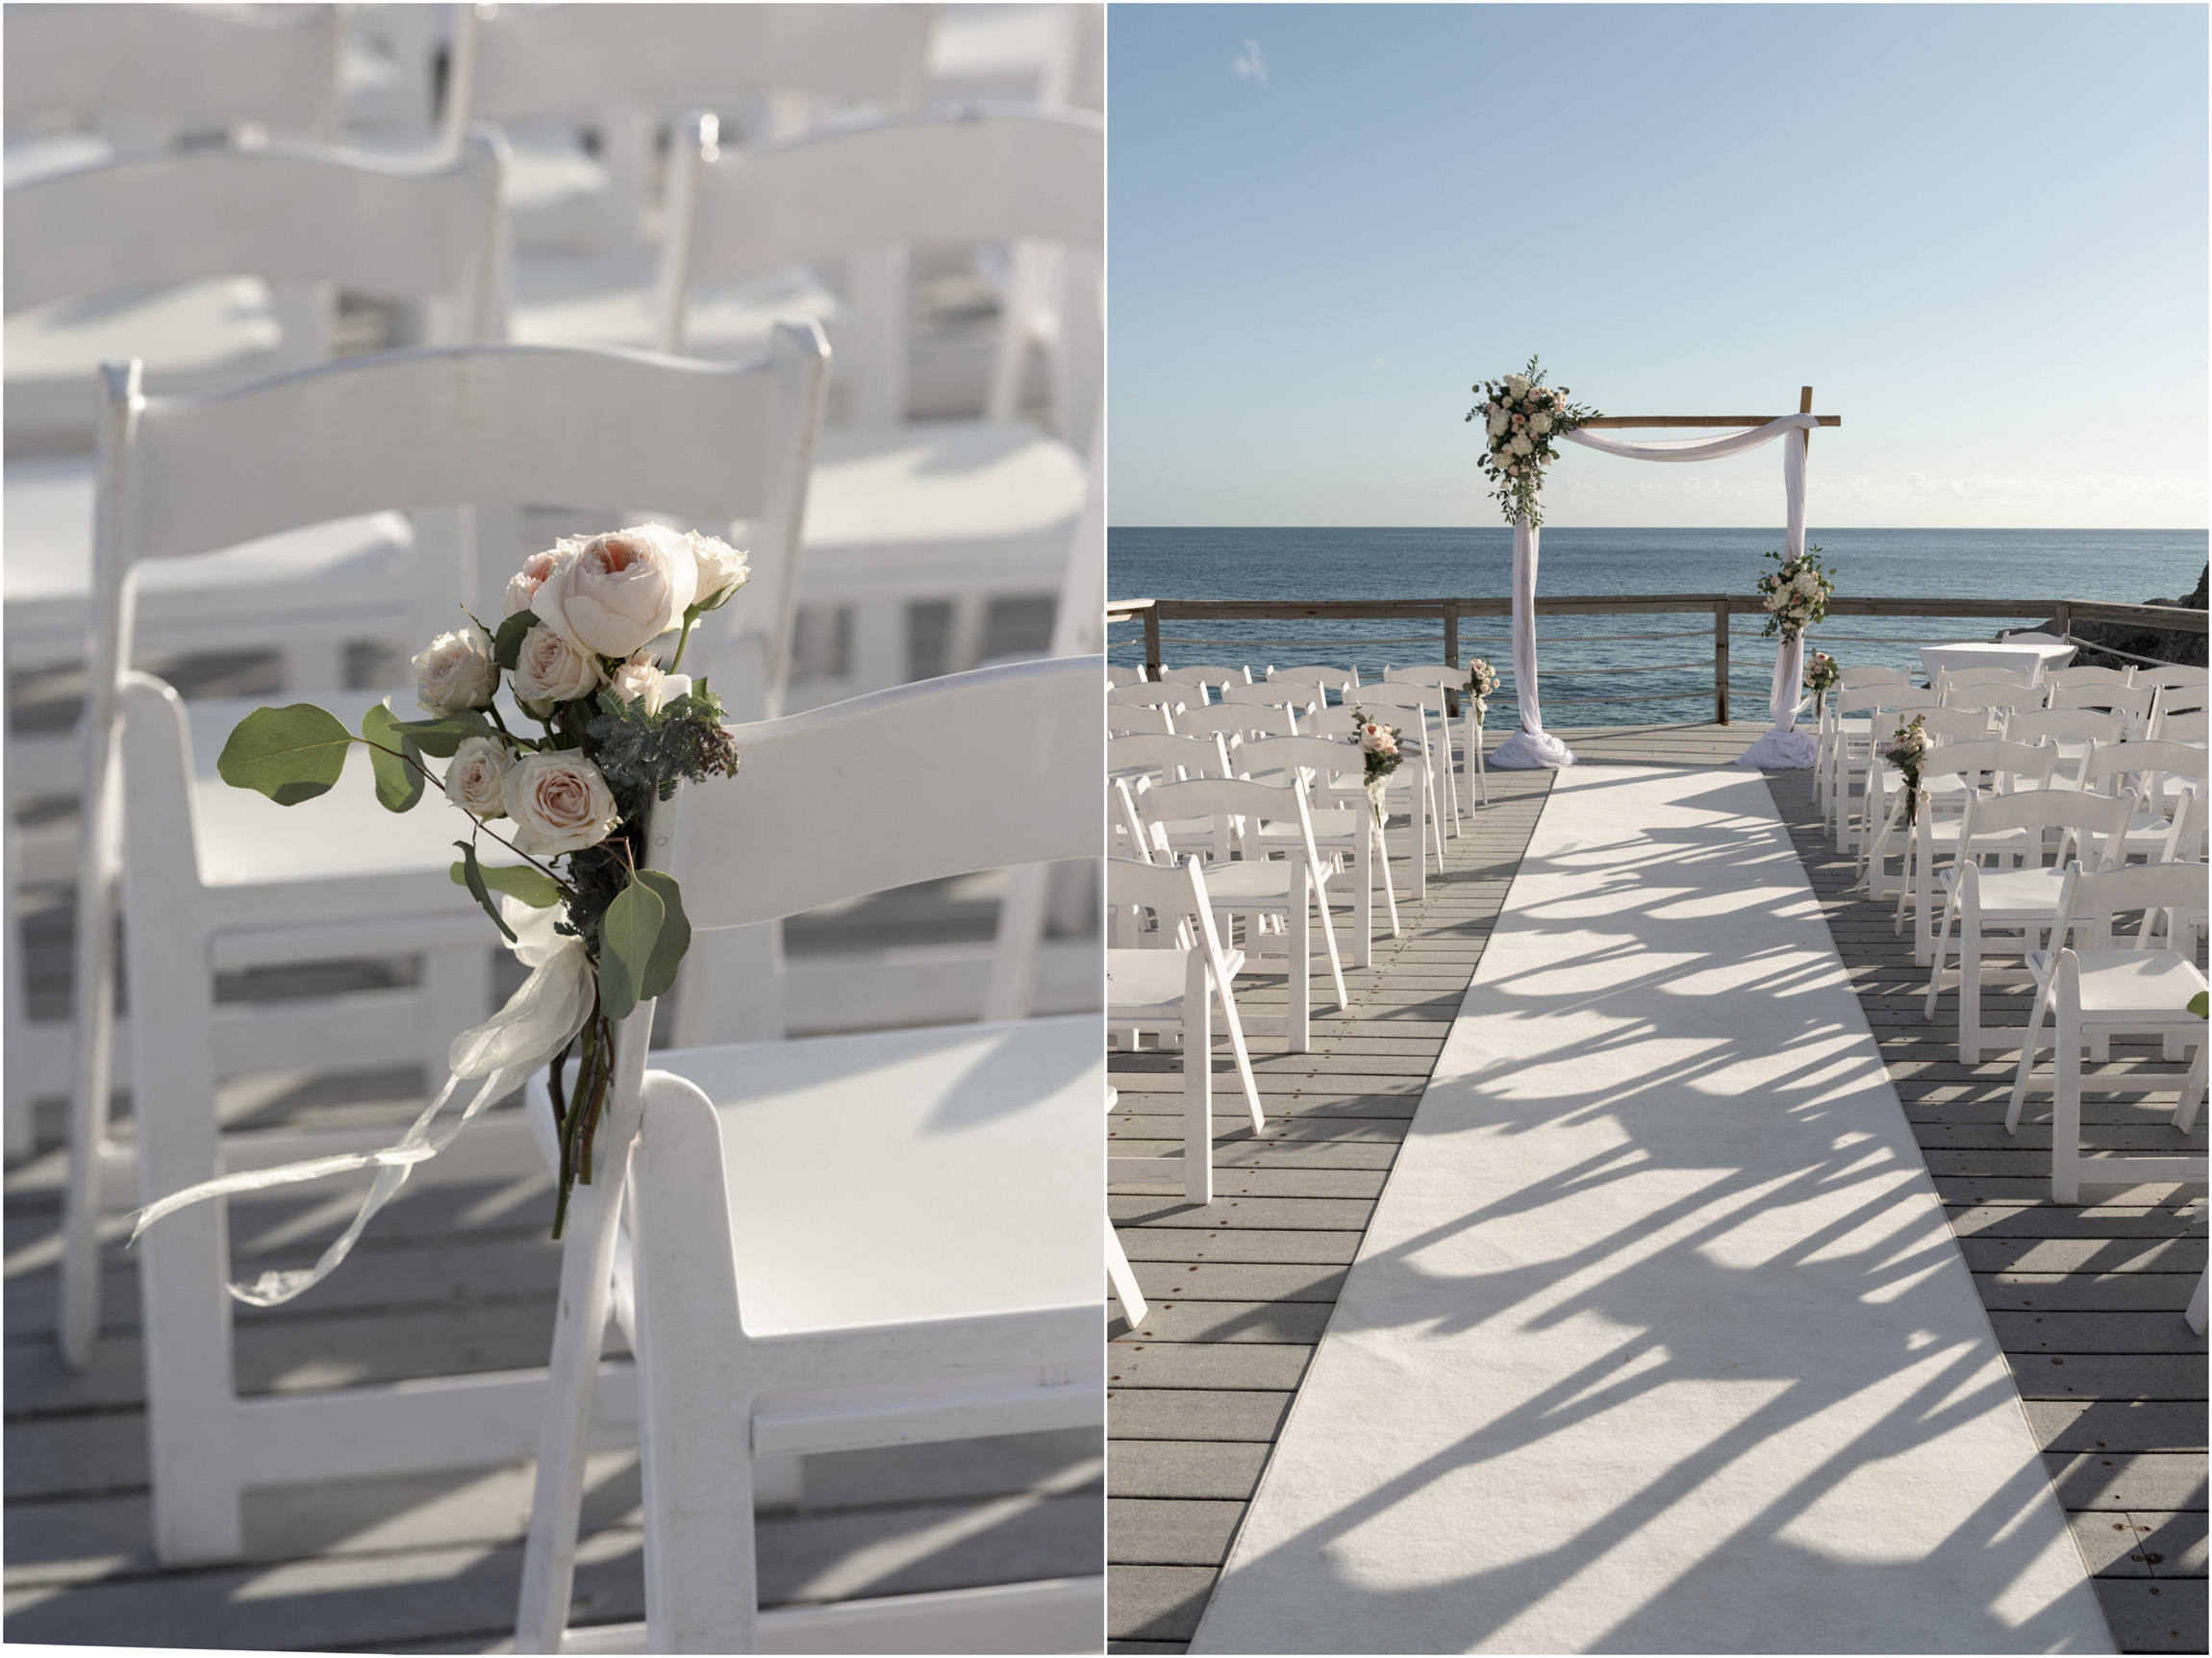 ©Fiander+Foto_Bermuda+Wedding+Photographer_The+Reefs_Taylor_Tedd_077.jpg